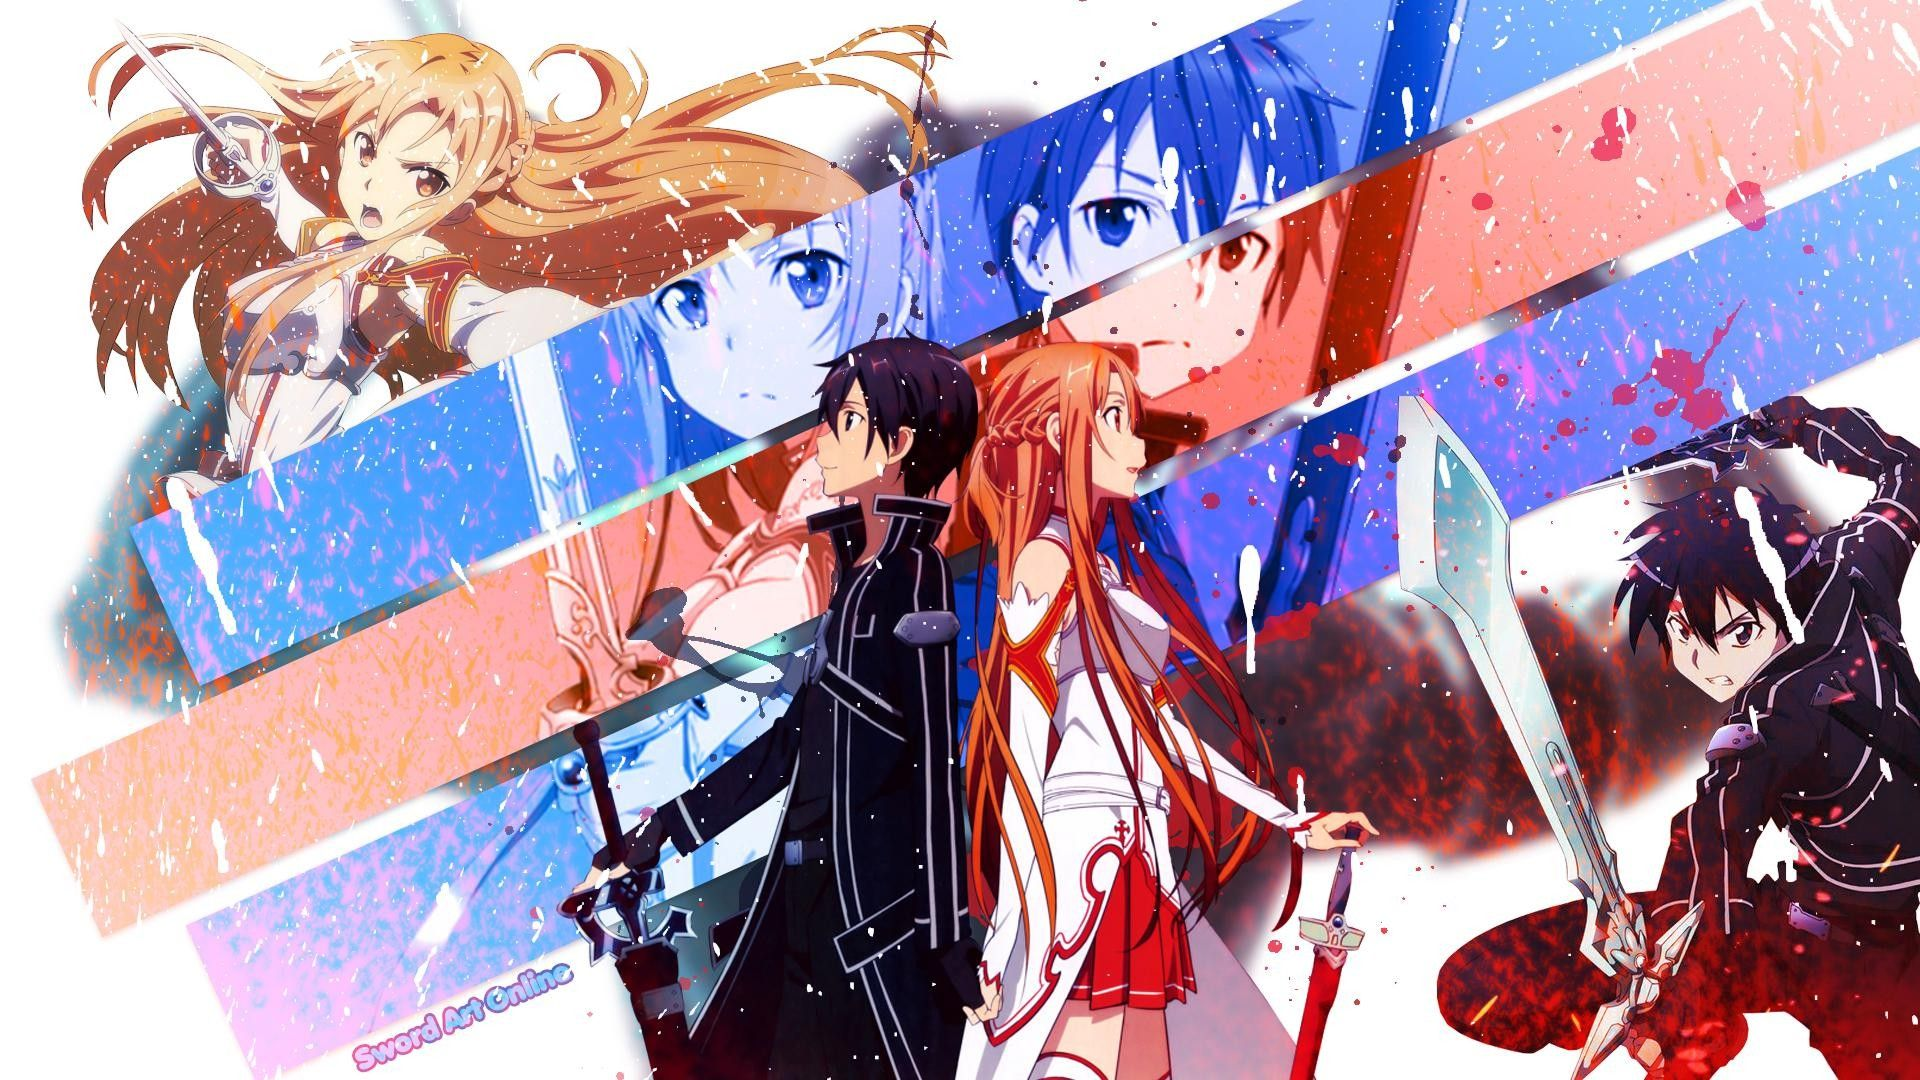 Kirito And Asuna Fairy Sword Art Online HD Wallpaper Just Cuz I Thought It Was Cool